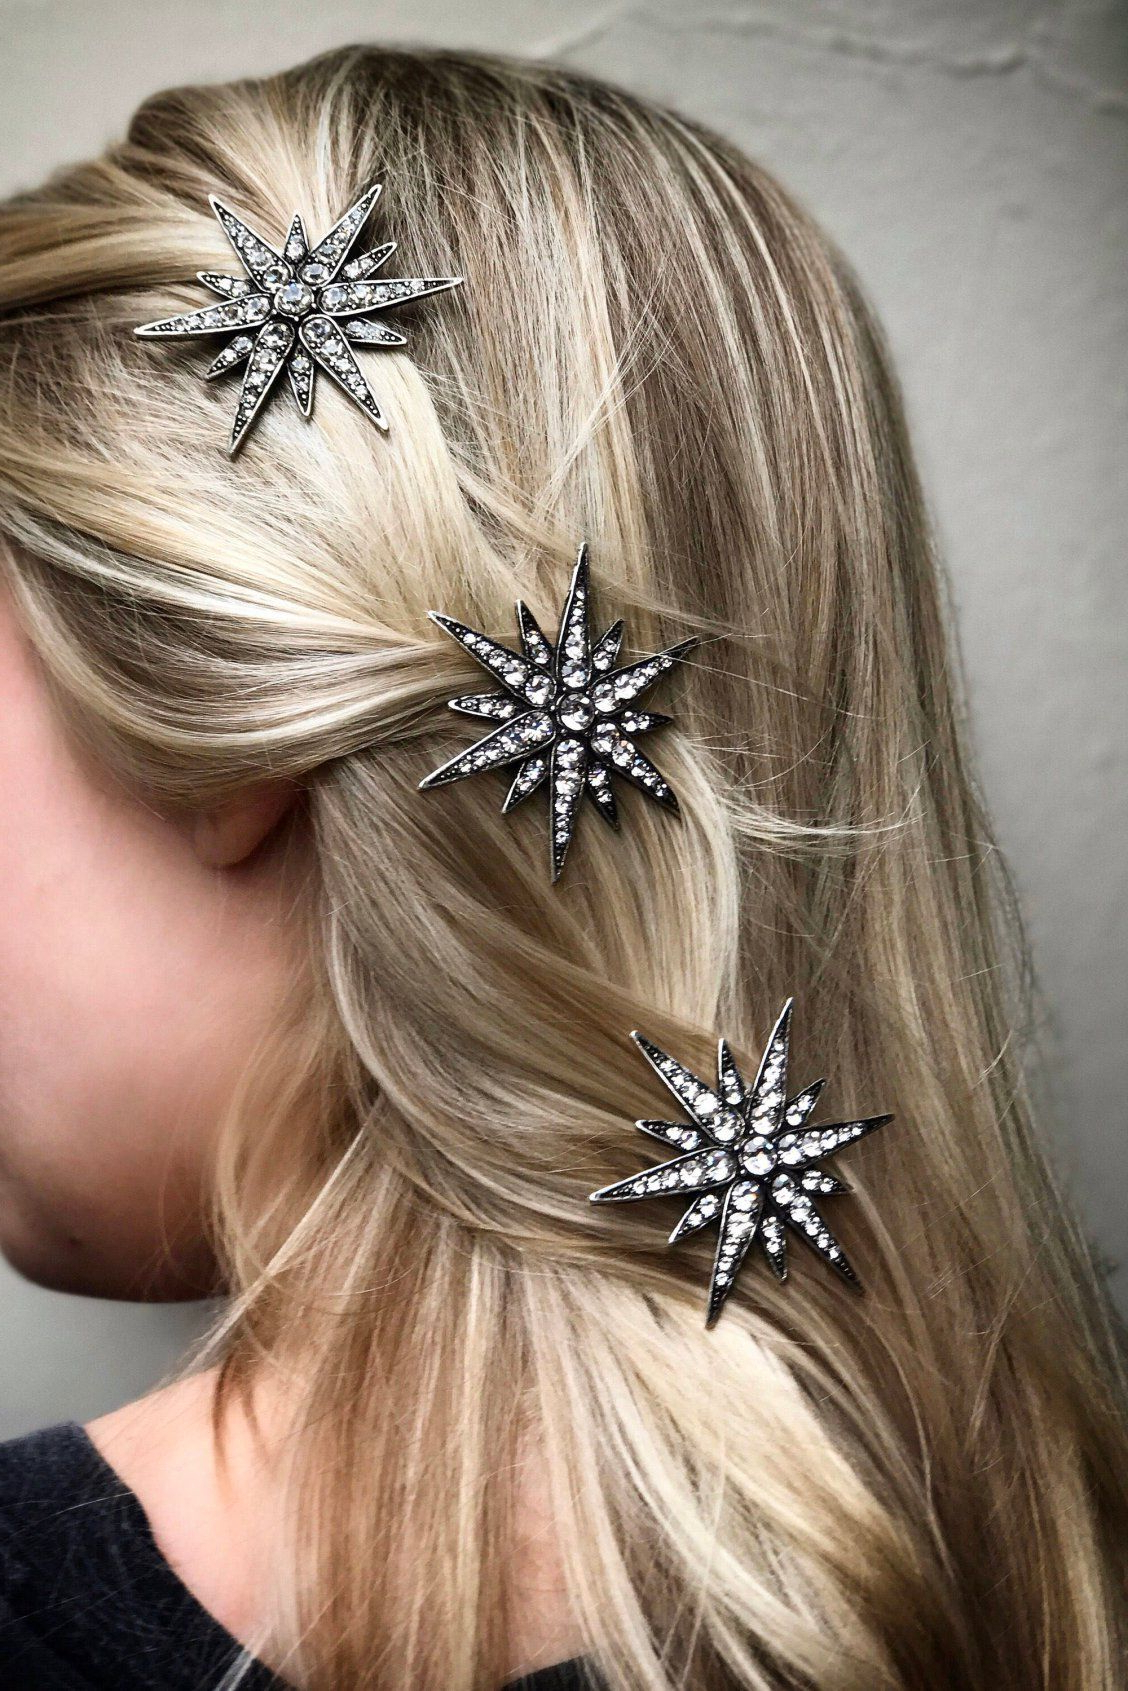 Latest Sleek Bridal Hairstyles With Floral Barrette For Starburst Hair Clip Barrette Star Crystal Rhinestone 'linx' In  (View 13 of 20)